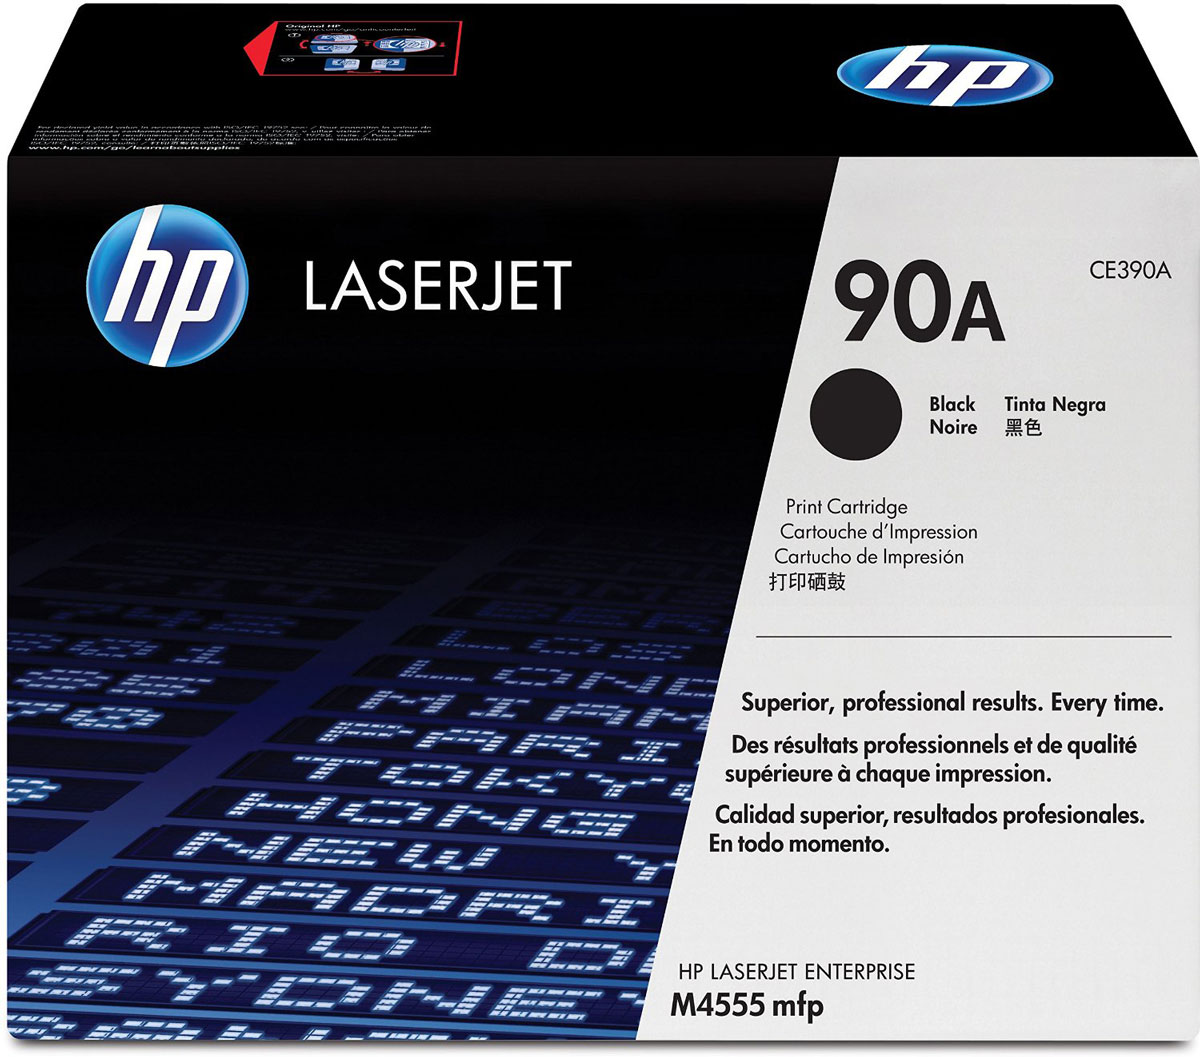 HP CE390A (90A), Black тонер-картридж для LaserJet Enterprise M4555MFP/M601/M602/M603 compatible ce390a ce390 390a 390 90a toner chip cartridge chip for hp laserjet m4555 4555 enterprise m601 m602 m603 page 10 page 9